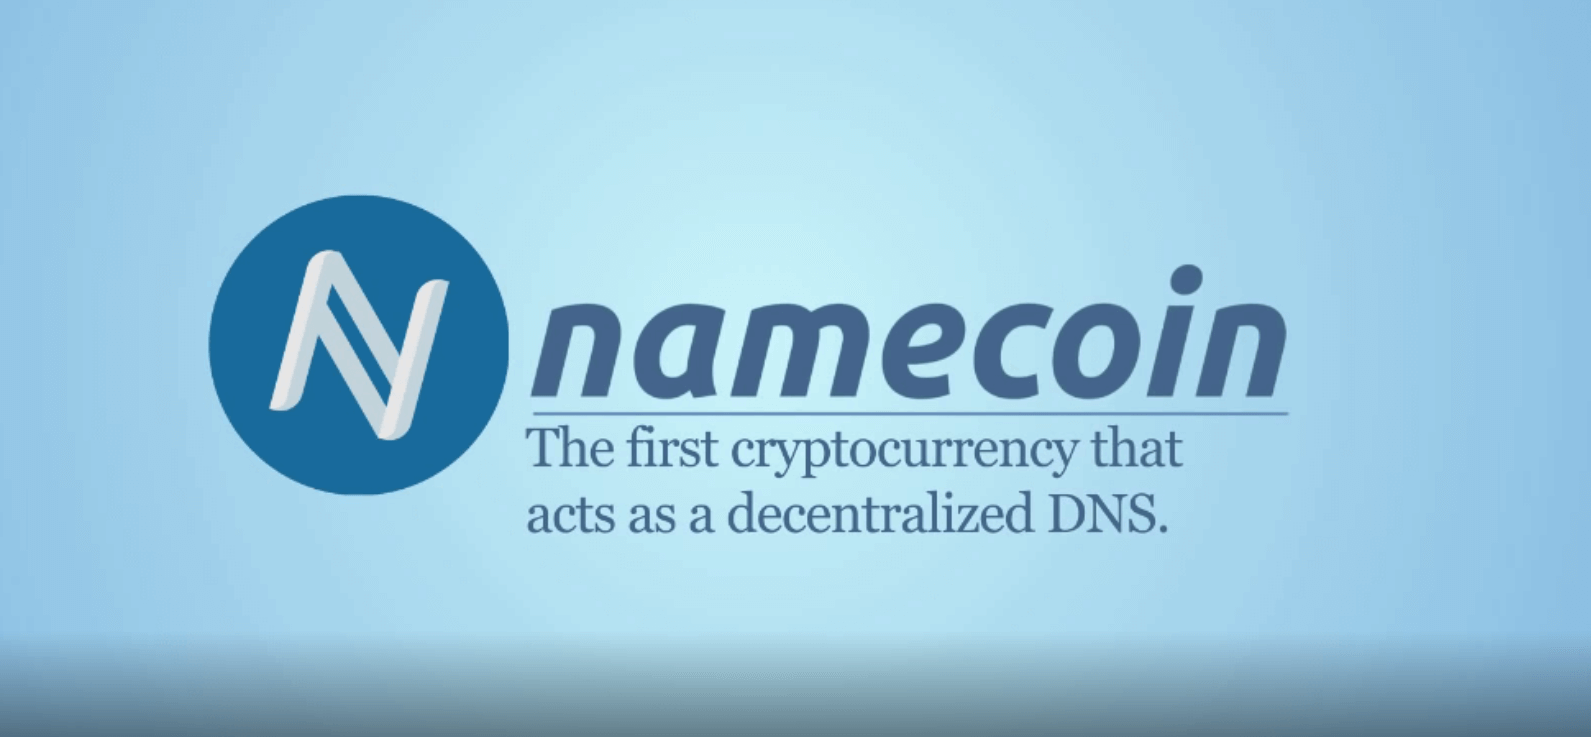 what are altcoin namecoin